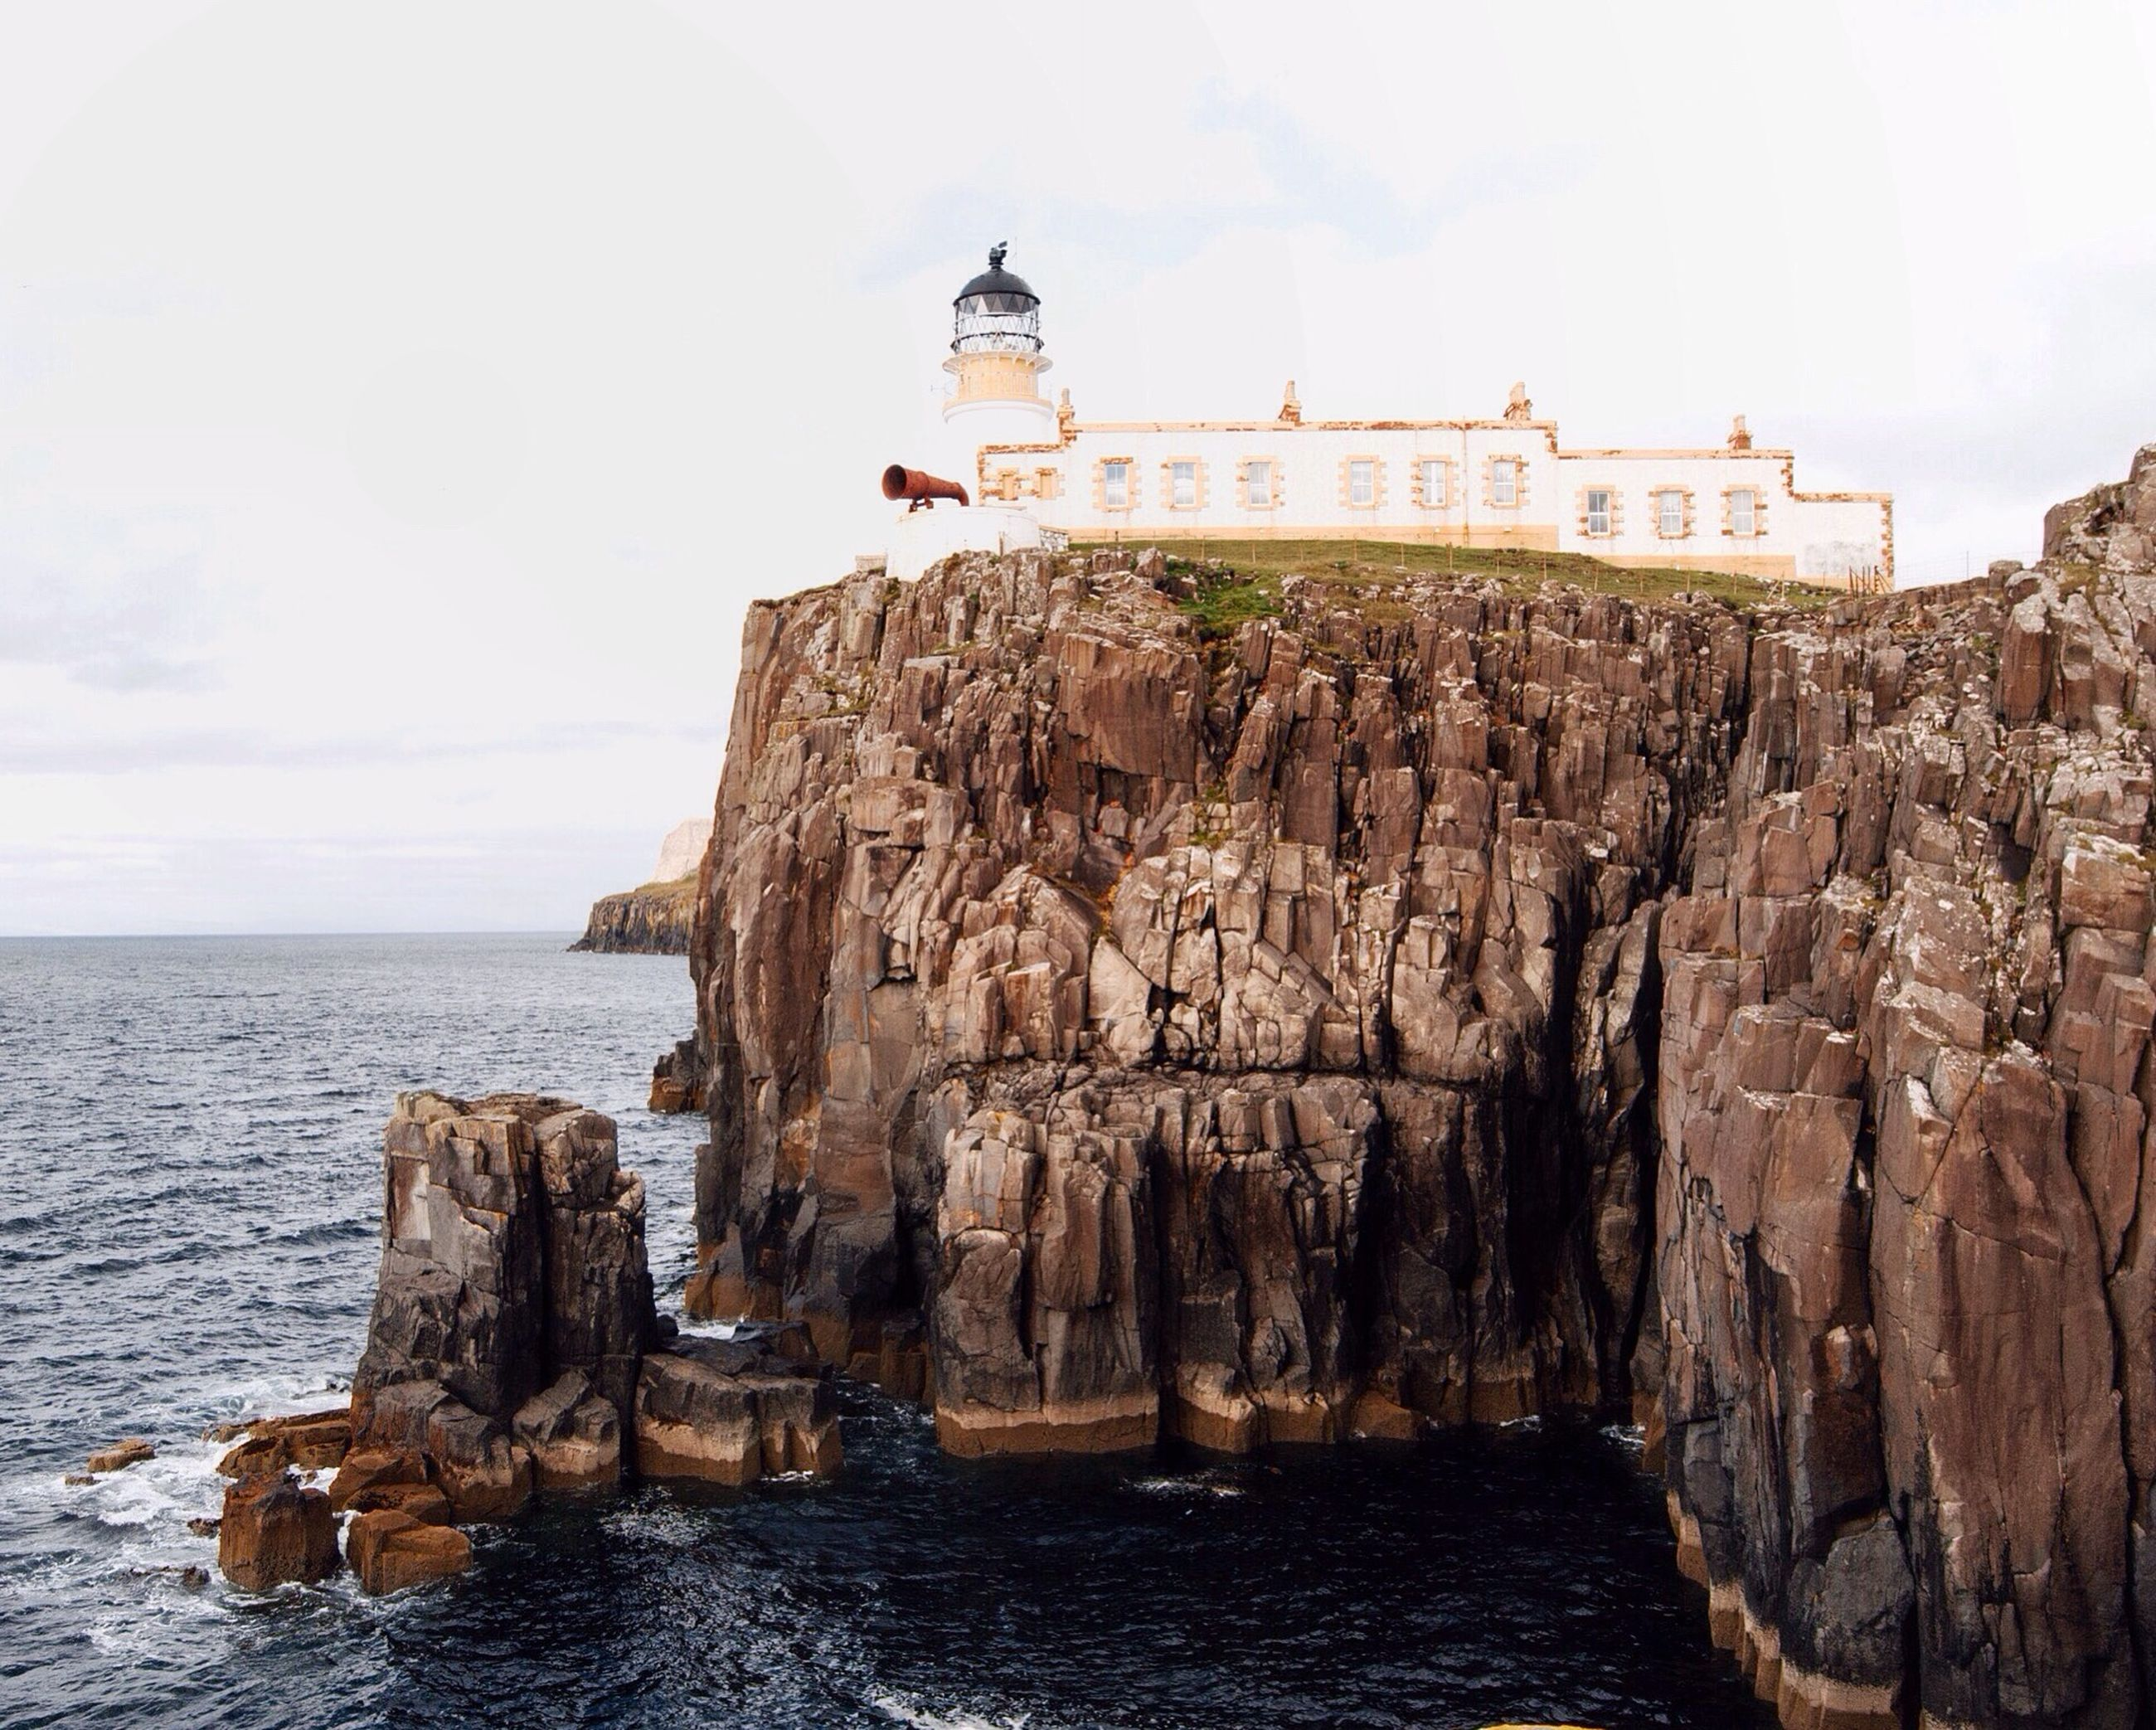 sea, water, horizon over water, sky, built structure, architecture, rock - object, building exterior, tranquil scene, lighthouse, tranquility, nature, scenics, rock formation, rock, cliff, beauty in nature, outdoors, day, beach